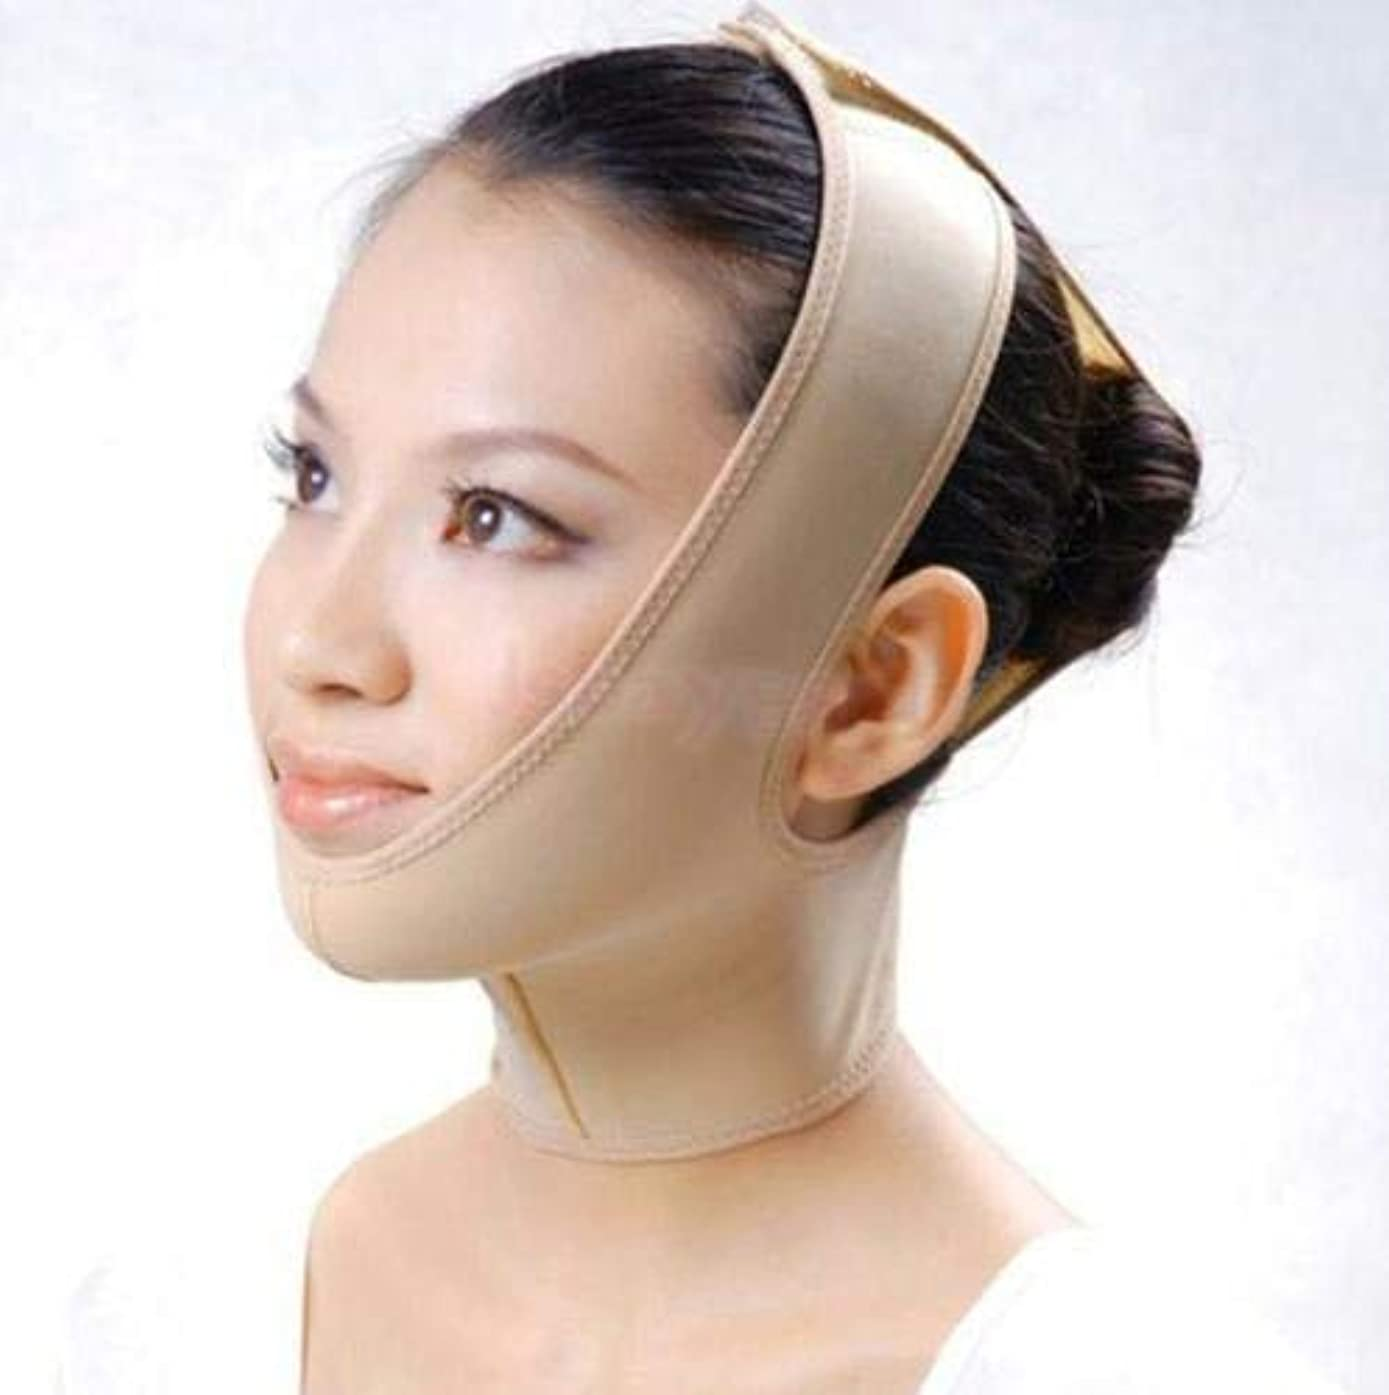 消防士信頼裏切りFidgetGear ANTI WRINKLE V FACE CHIN CHEEK LIFT UP SLIMMING THIN BELT MASK STRAP BAND S-XXL Small